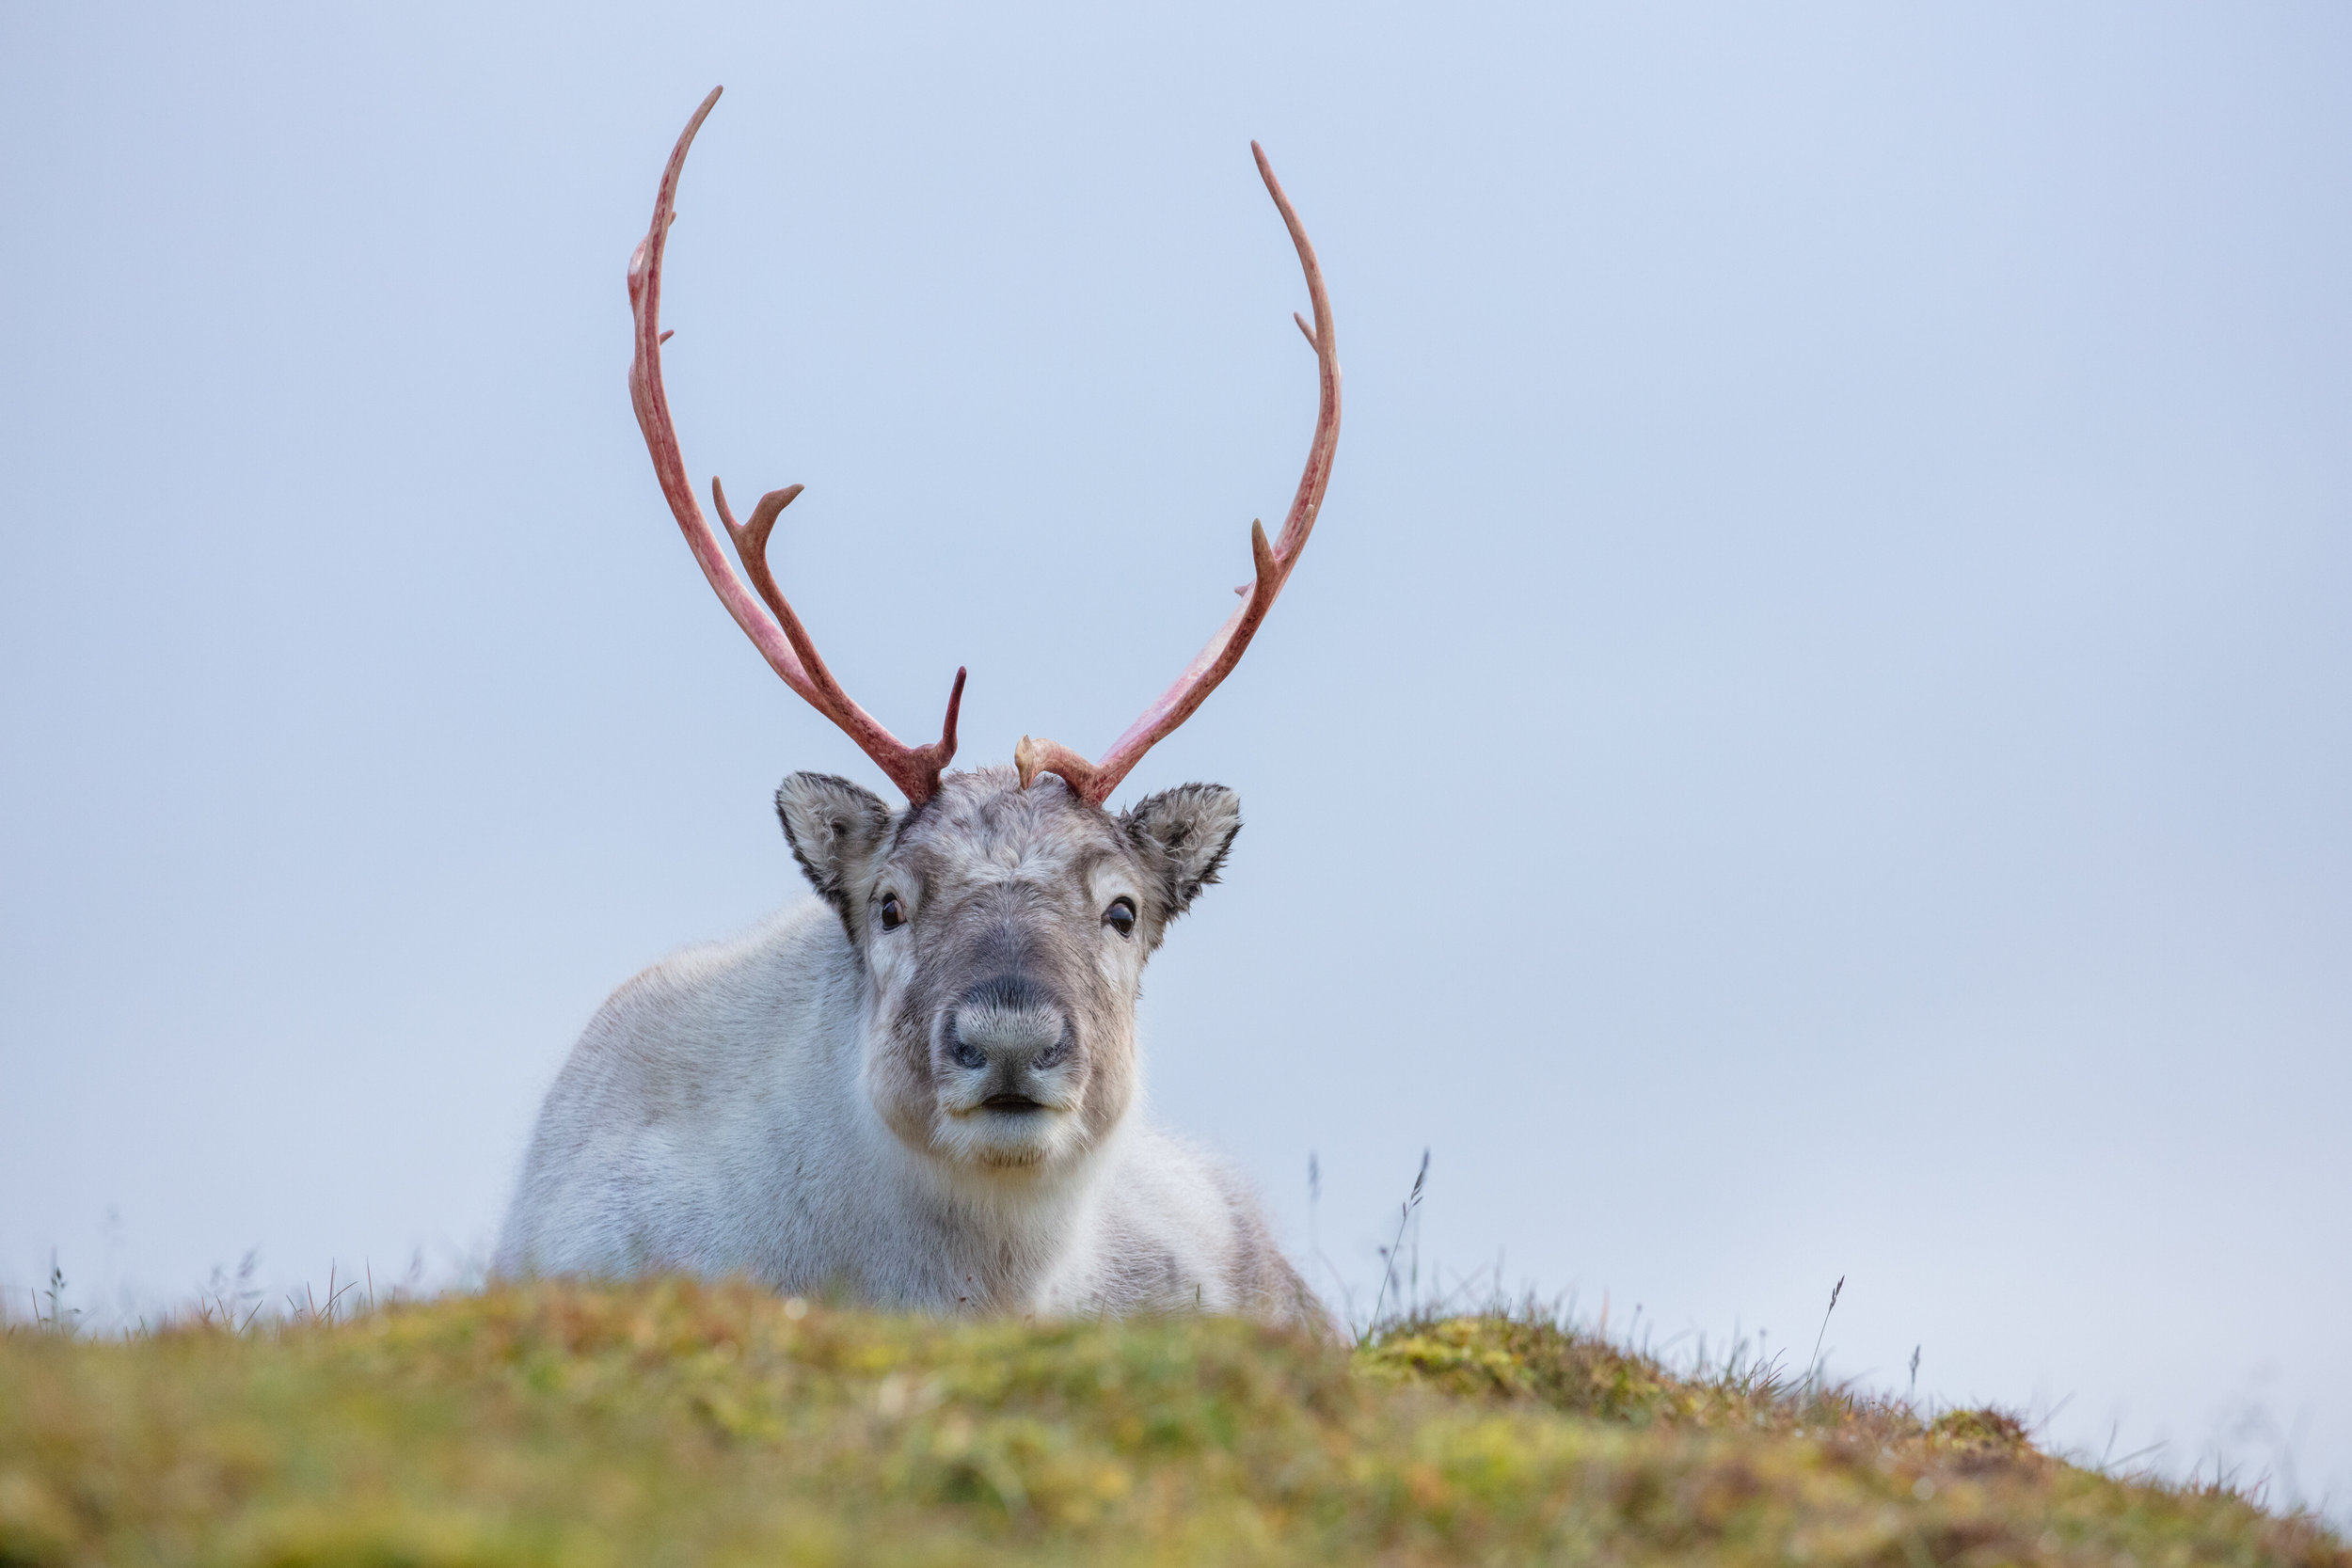 A Svalbard Reindeer rests atop a mossy ridge-line, overlooking the arctic ocean nearby. As the days shorten and the icy arctic winter approaches, reindeer shed their grey/brown coat and for a fluffy white coat that helps them survive as the northernmost herbivorous mammal in the world. Svalbard Reindeer look like something out of a children's book with their big eyes, round fluffy bodies, and short stubby legs. They are the smallest of all reindeer with a weight that is nearly half of the other sub-species. With no natural predators, they are incredibly friendly and docile animals which was their greatest downfall in the early 1900s when they were nearly hunted to extinction. After 1925, however, the sub-species gained legal protections and has since rebounded throughout the islands of Svalbard.